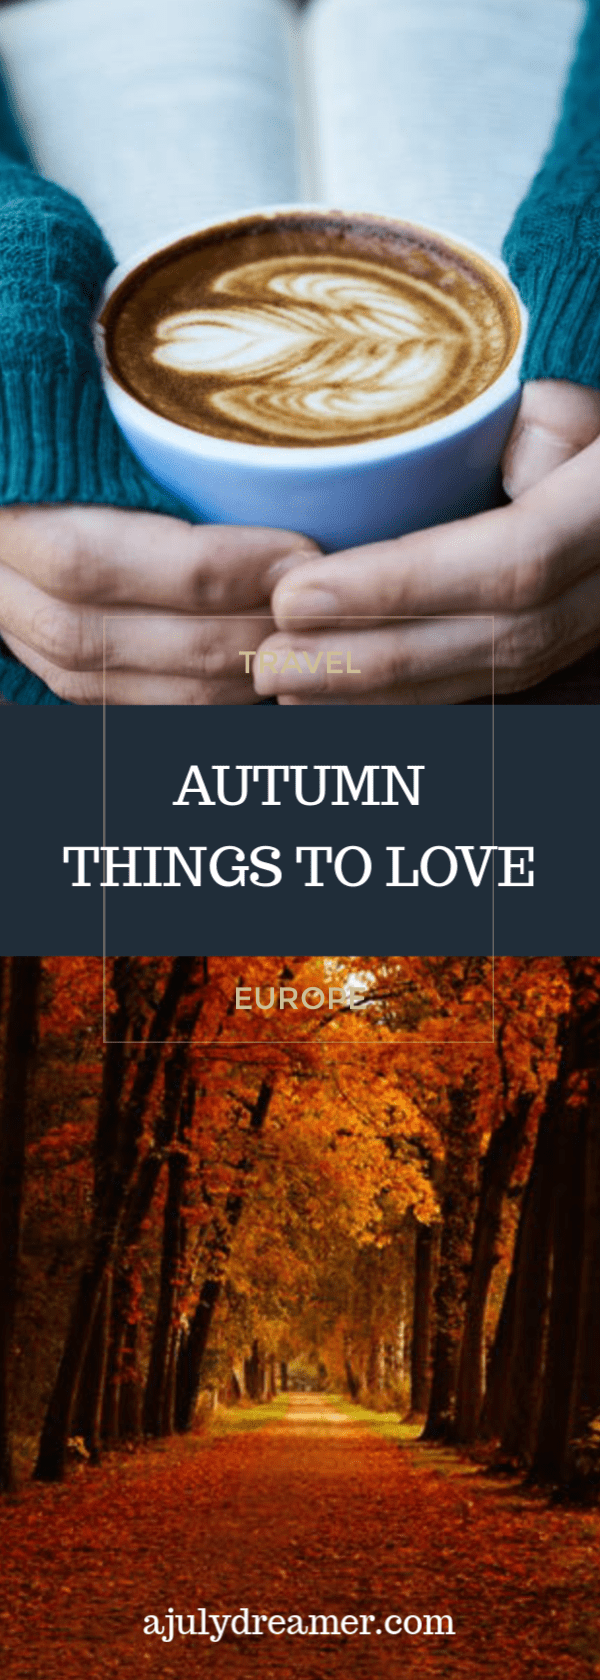 With Autumn coming to an end, I thought I share 9 things to love about autumn. November is the last month of autumn and there is so much I wanted to do that I didn't.